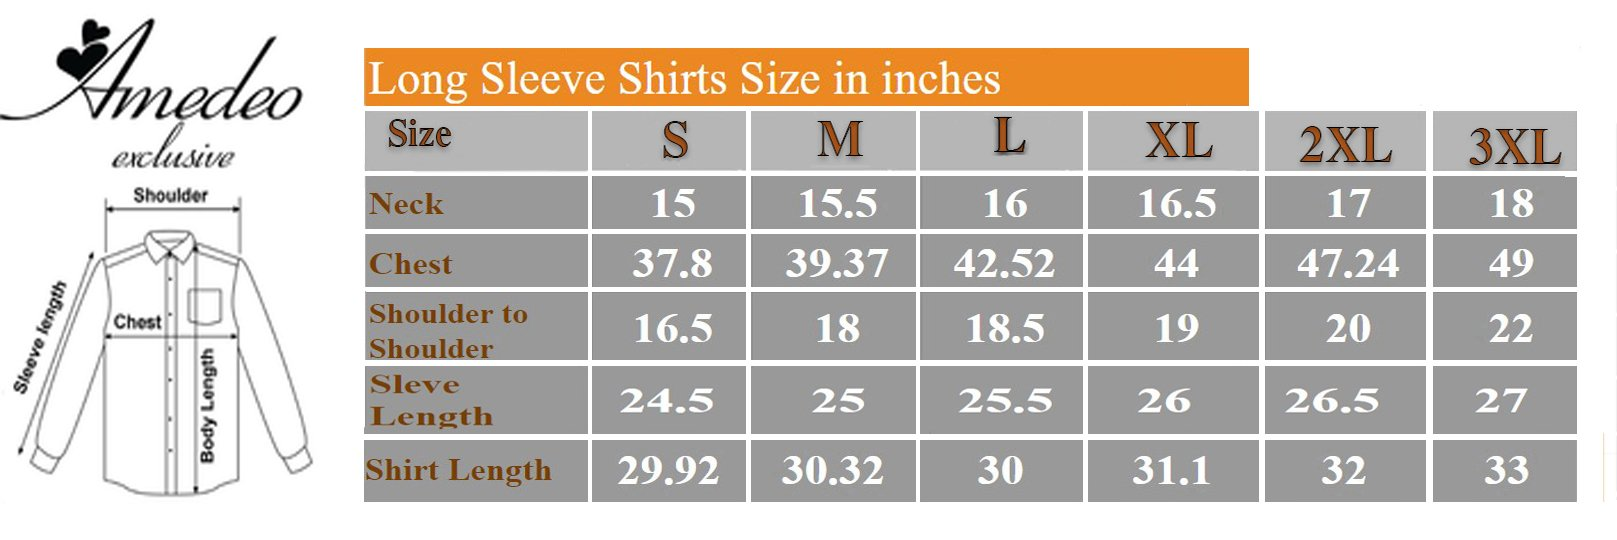 Black Blue Orange Mens Slim Fit Designer Dress Shirt - tailored Cotton Shirts for Work and Casual Wear - Amedeo Exclusive